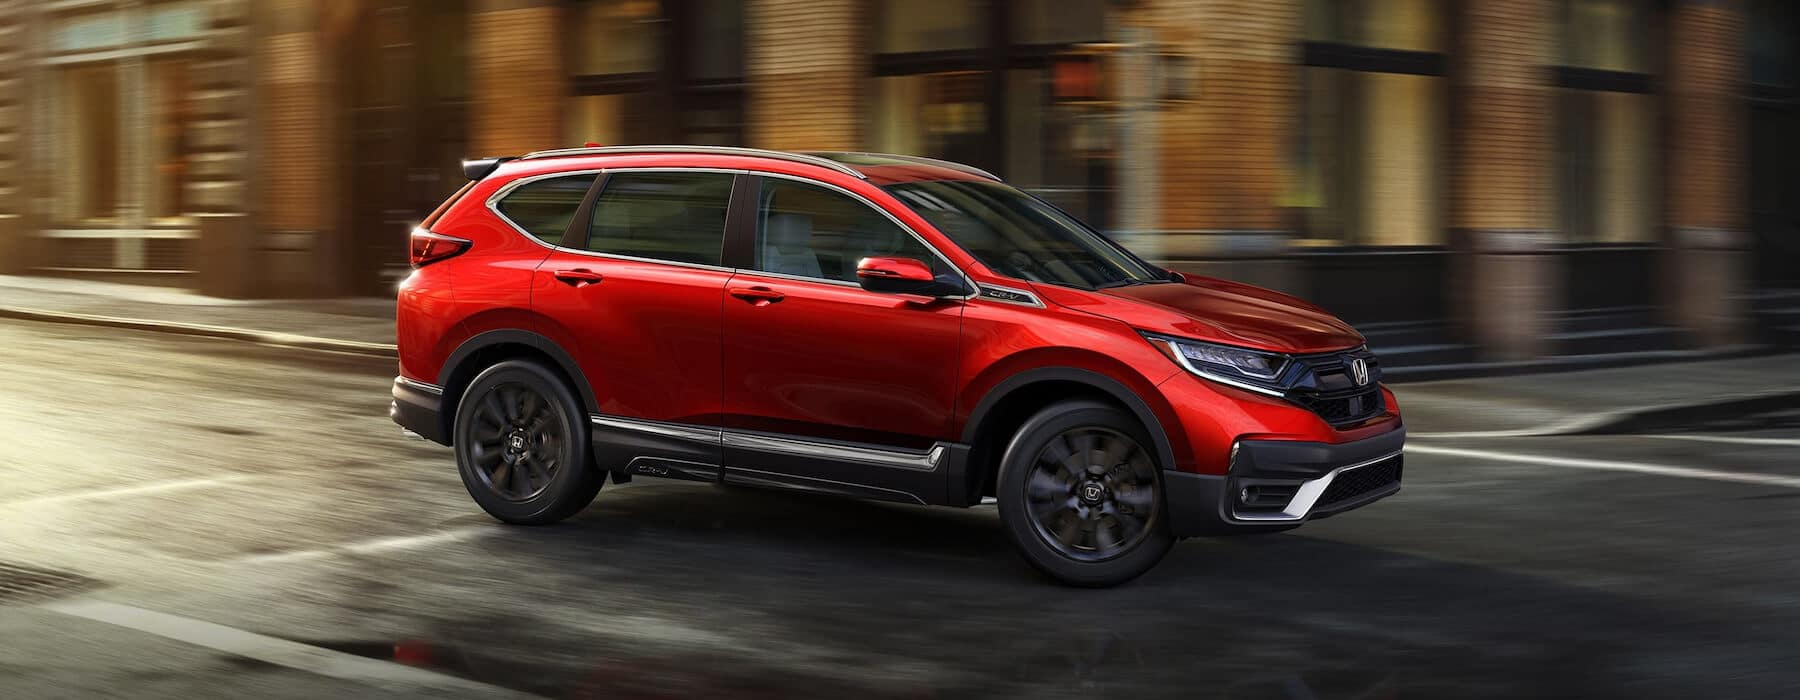 Why Choose the 2020 Honda CR-V Slider